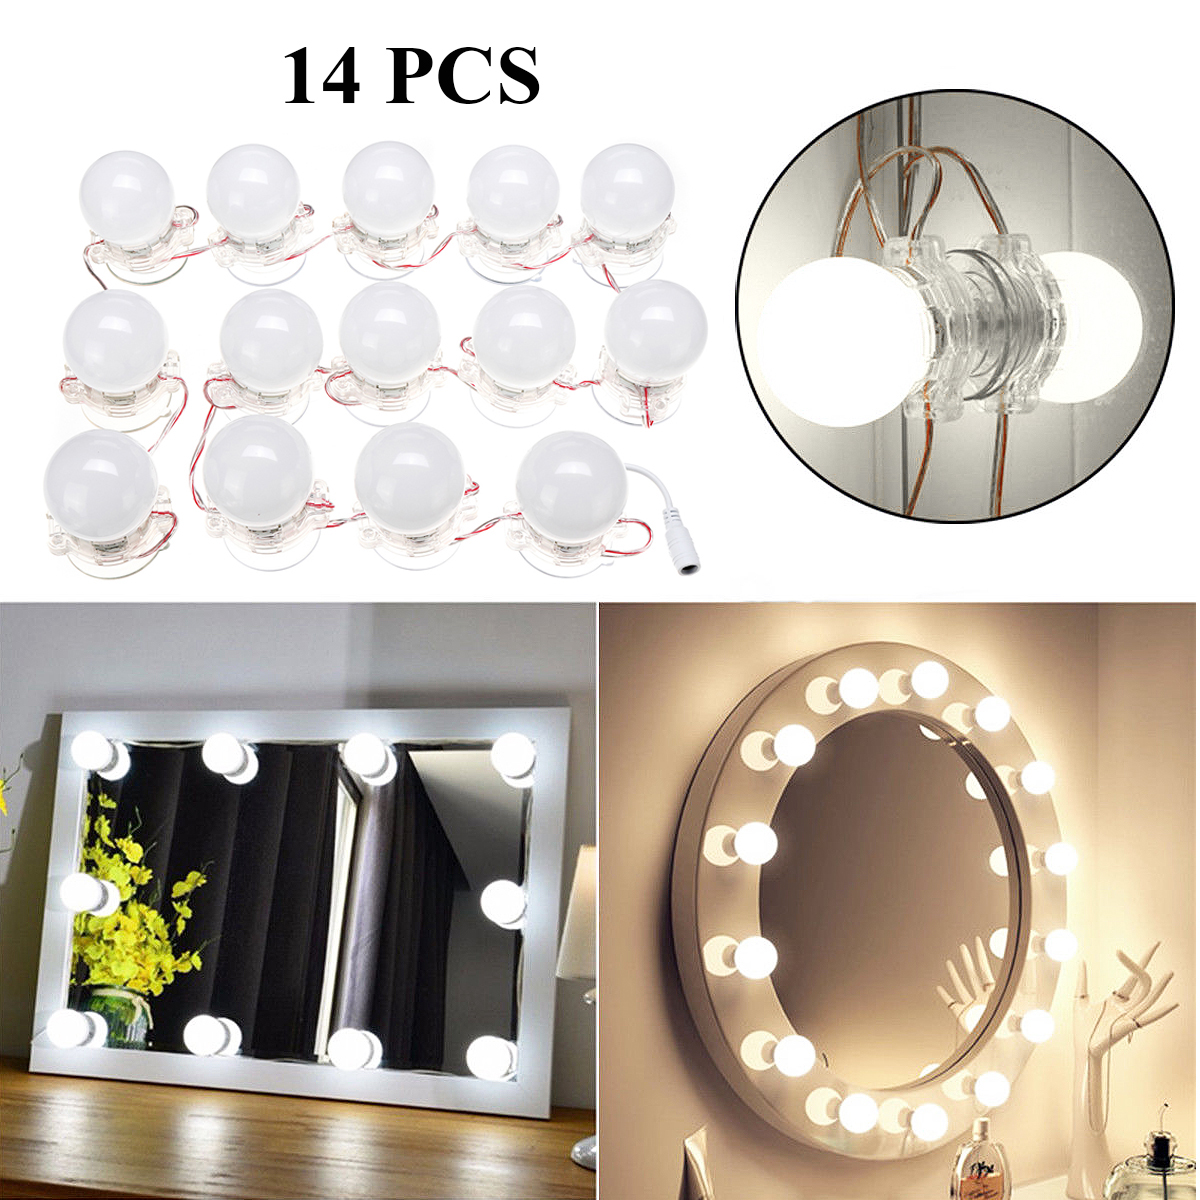 New DIY 14PCS LED Lamp String White Makeup Mirrors Lamp Suction Cosmetic Dressing Salon Barber Shop Dresser Mirror Lighting bob cosmetic makeup powder w puff mirror ivory white 02